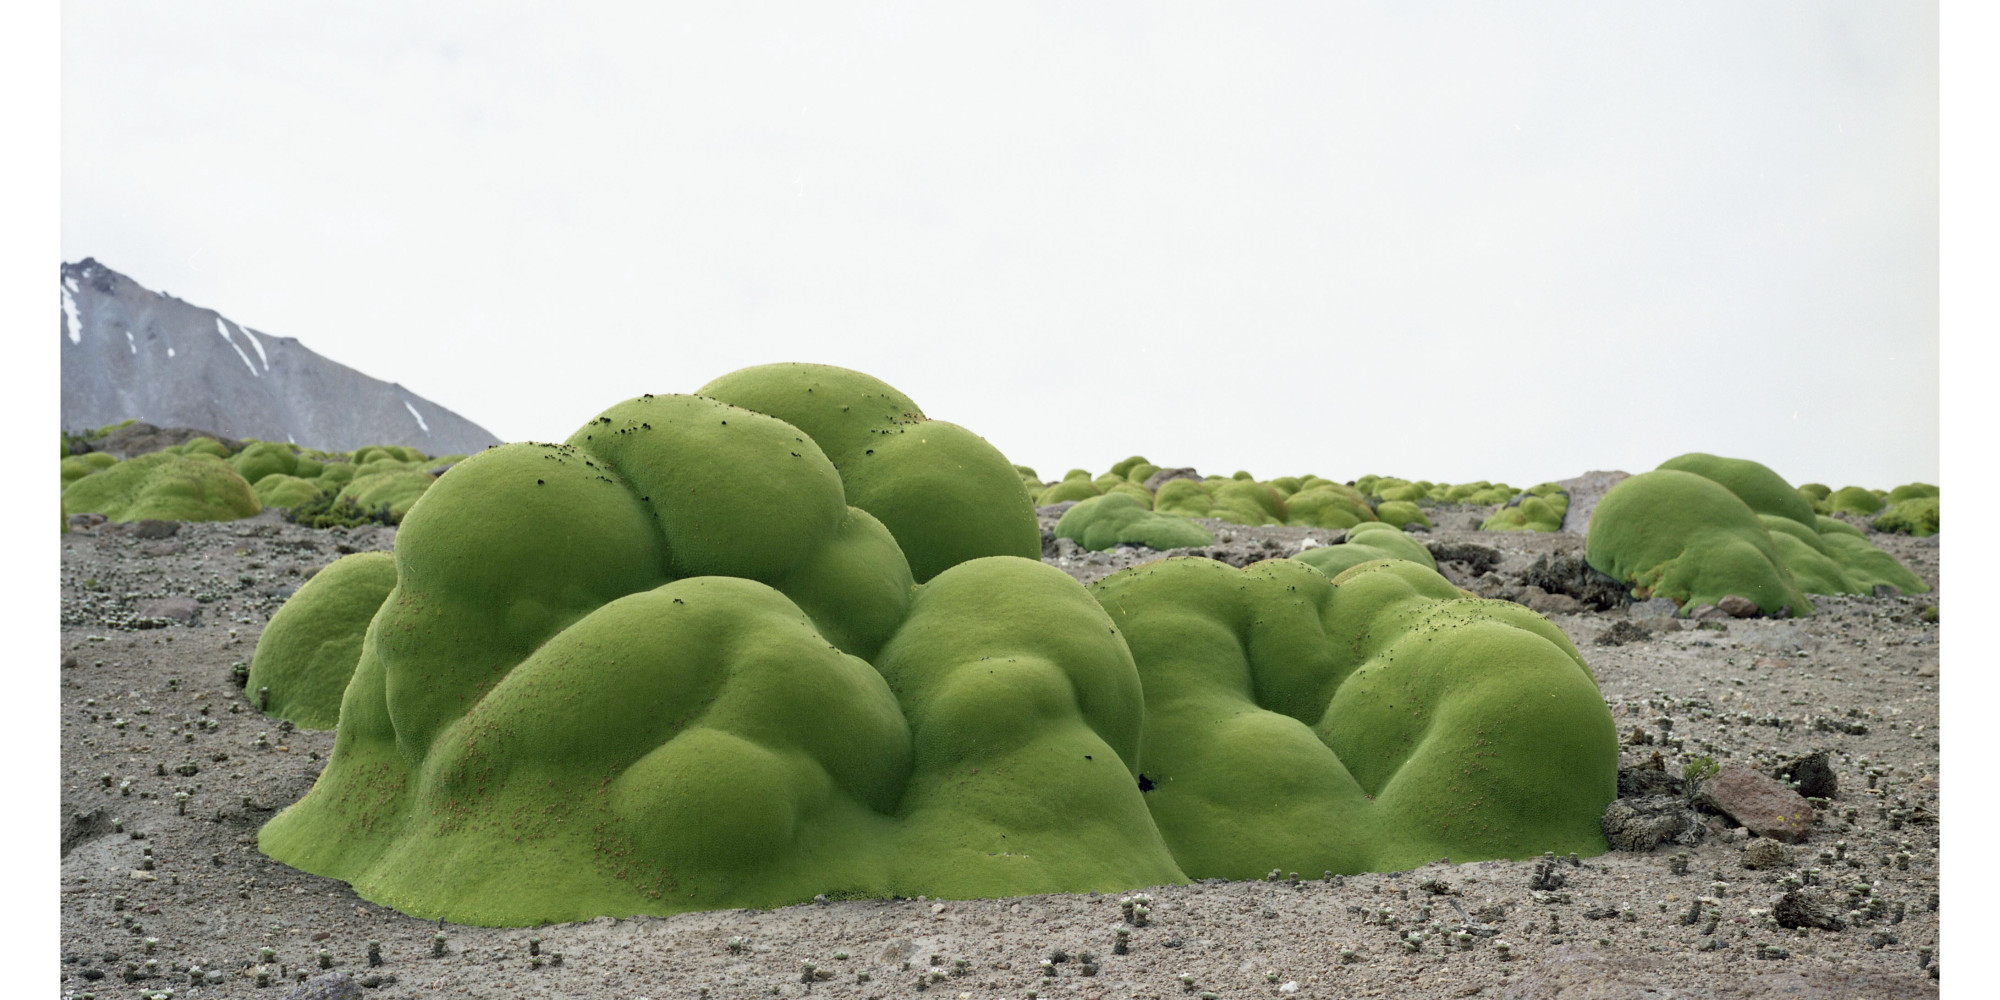 11 Of The Oldest Living Things In The World